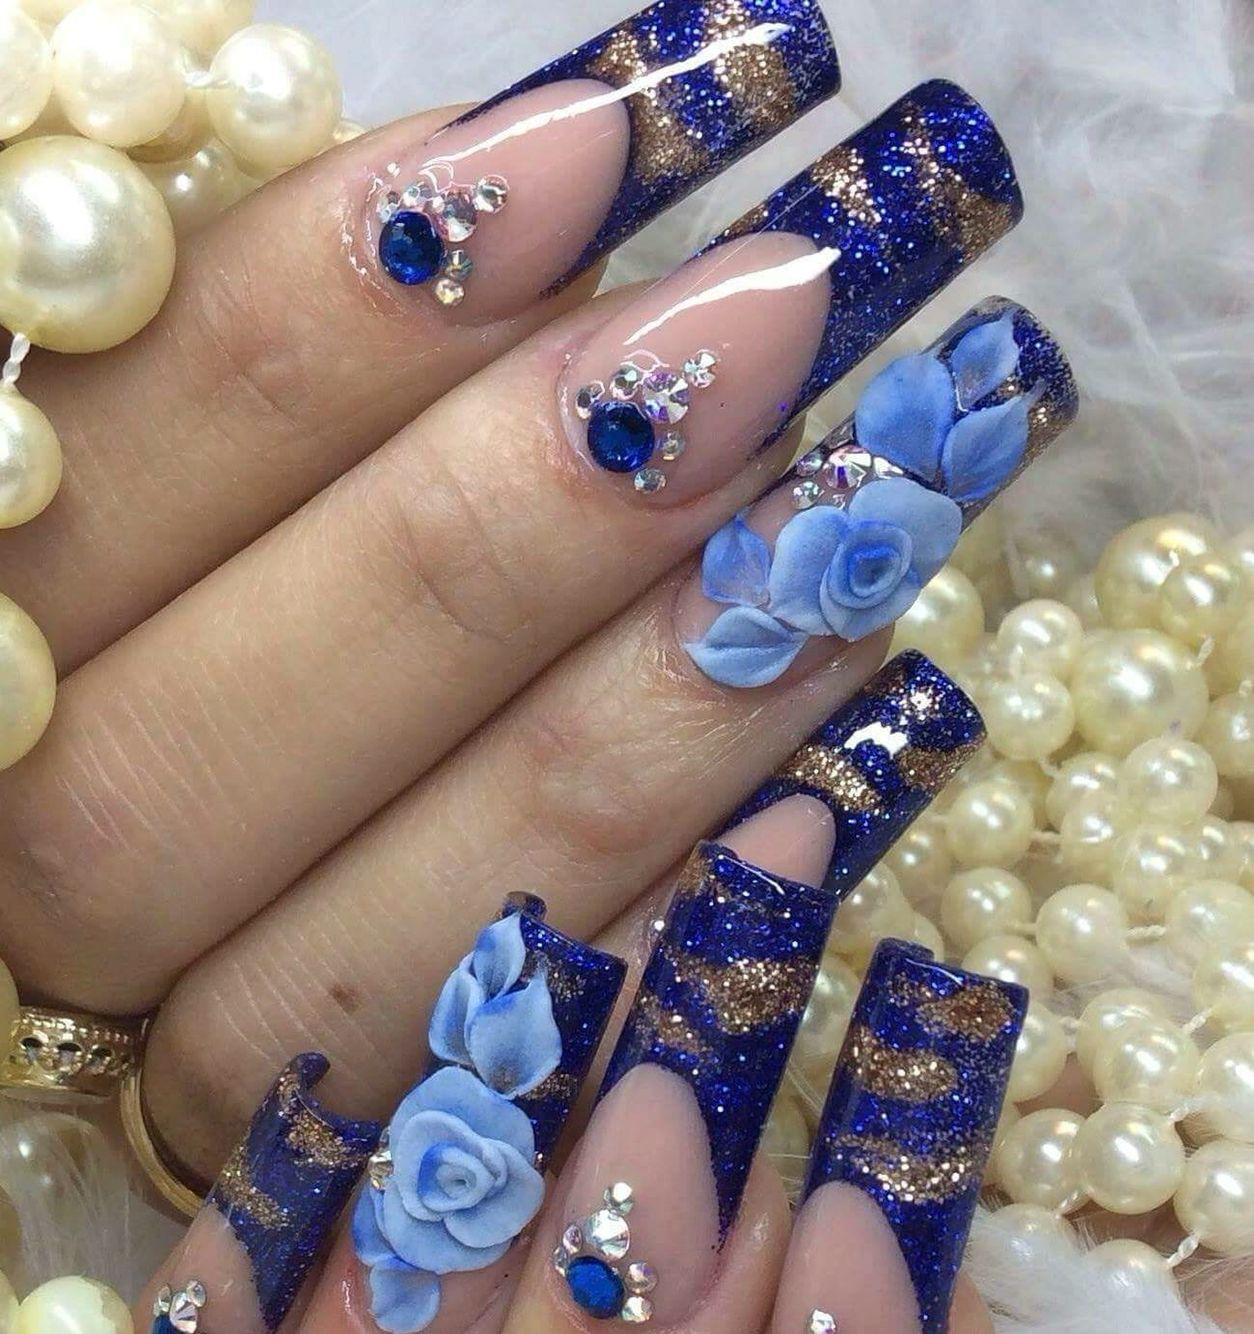 30 Stunning Diy 3d Nail Designs For Beginners Of 2019: Blue Hues Of Nail Enamel With Clear Nail Polish, And